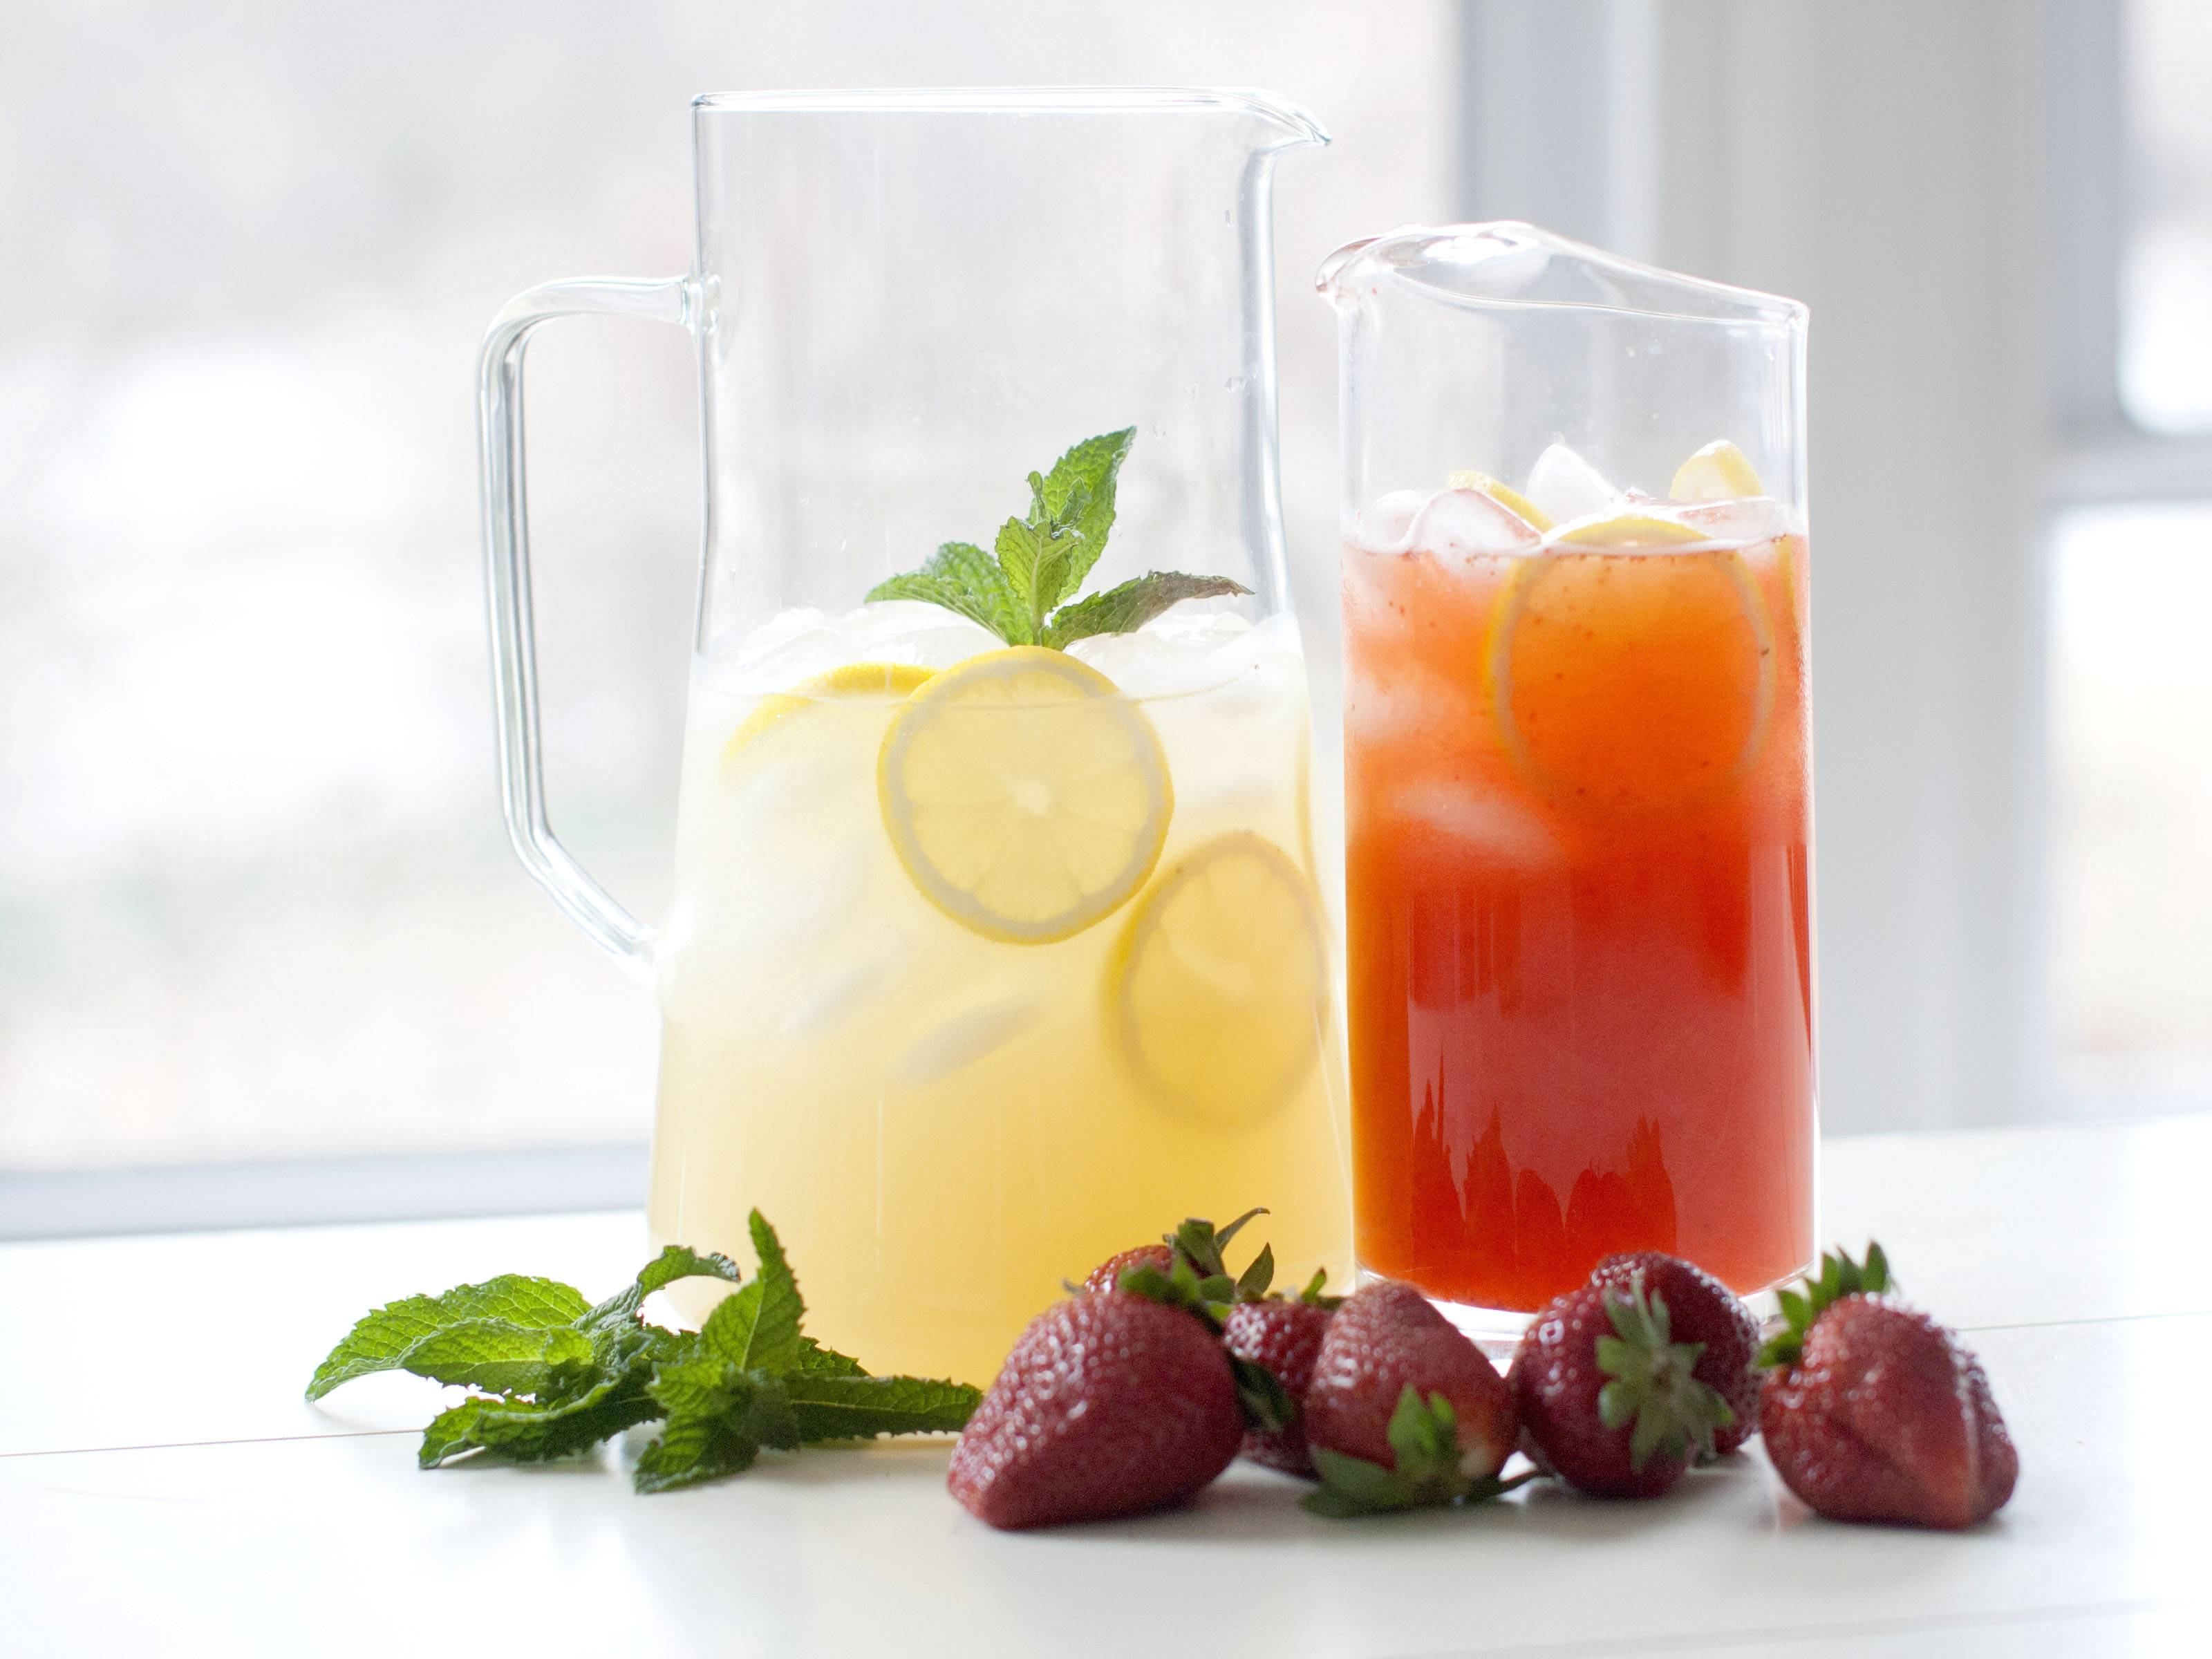 If you're looking for a naturally low-calorie alternative to regular soda, try adding a few splashes of lemon or other juice to plain club soda or seltzer instead of regular lemonade. It can have as much sugar as the soda.